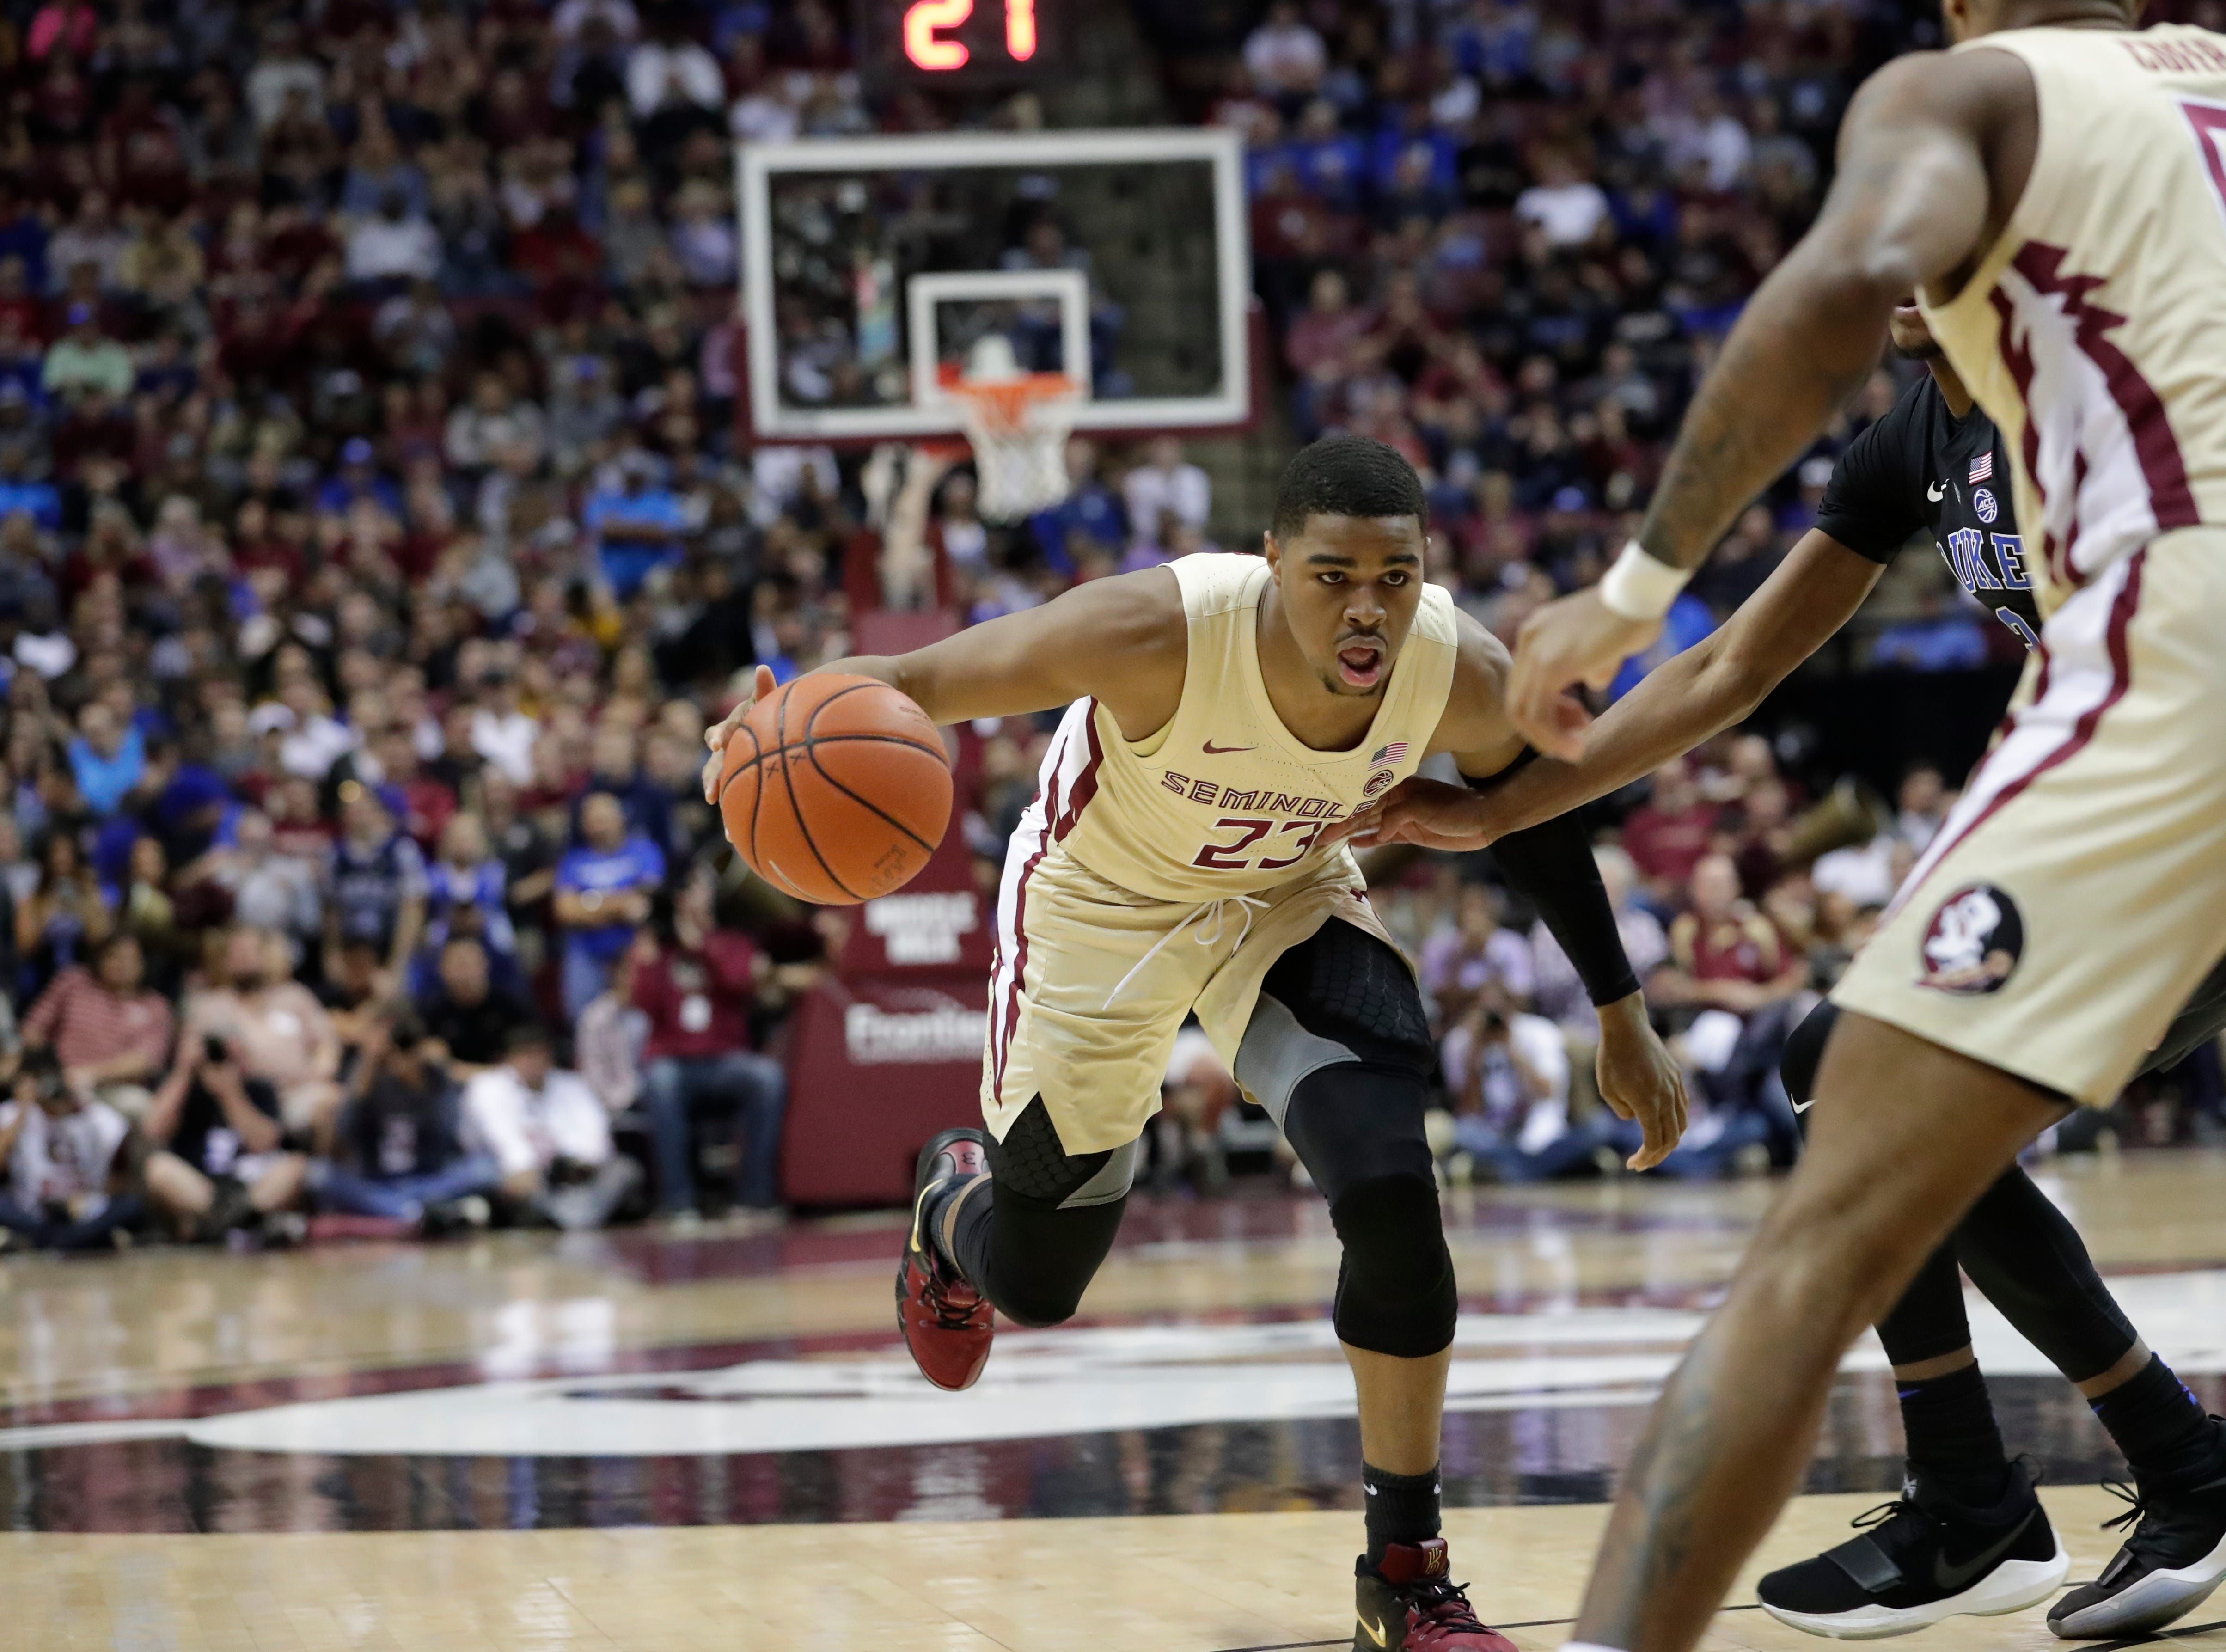 Florida State Seminoles guard M.J. Walker (23) drives the ball to the hoop. Ranked 13 in the ACC, the Florida State Seminoles host the number 1 team, the Duke Blue Devils, at the Tucker Civic Center, Saturday, Jan. 12, 2019.